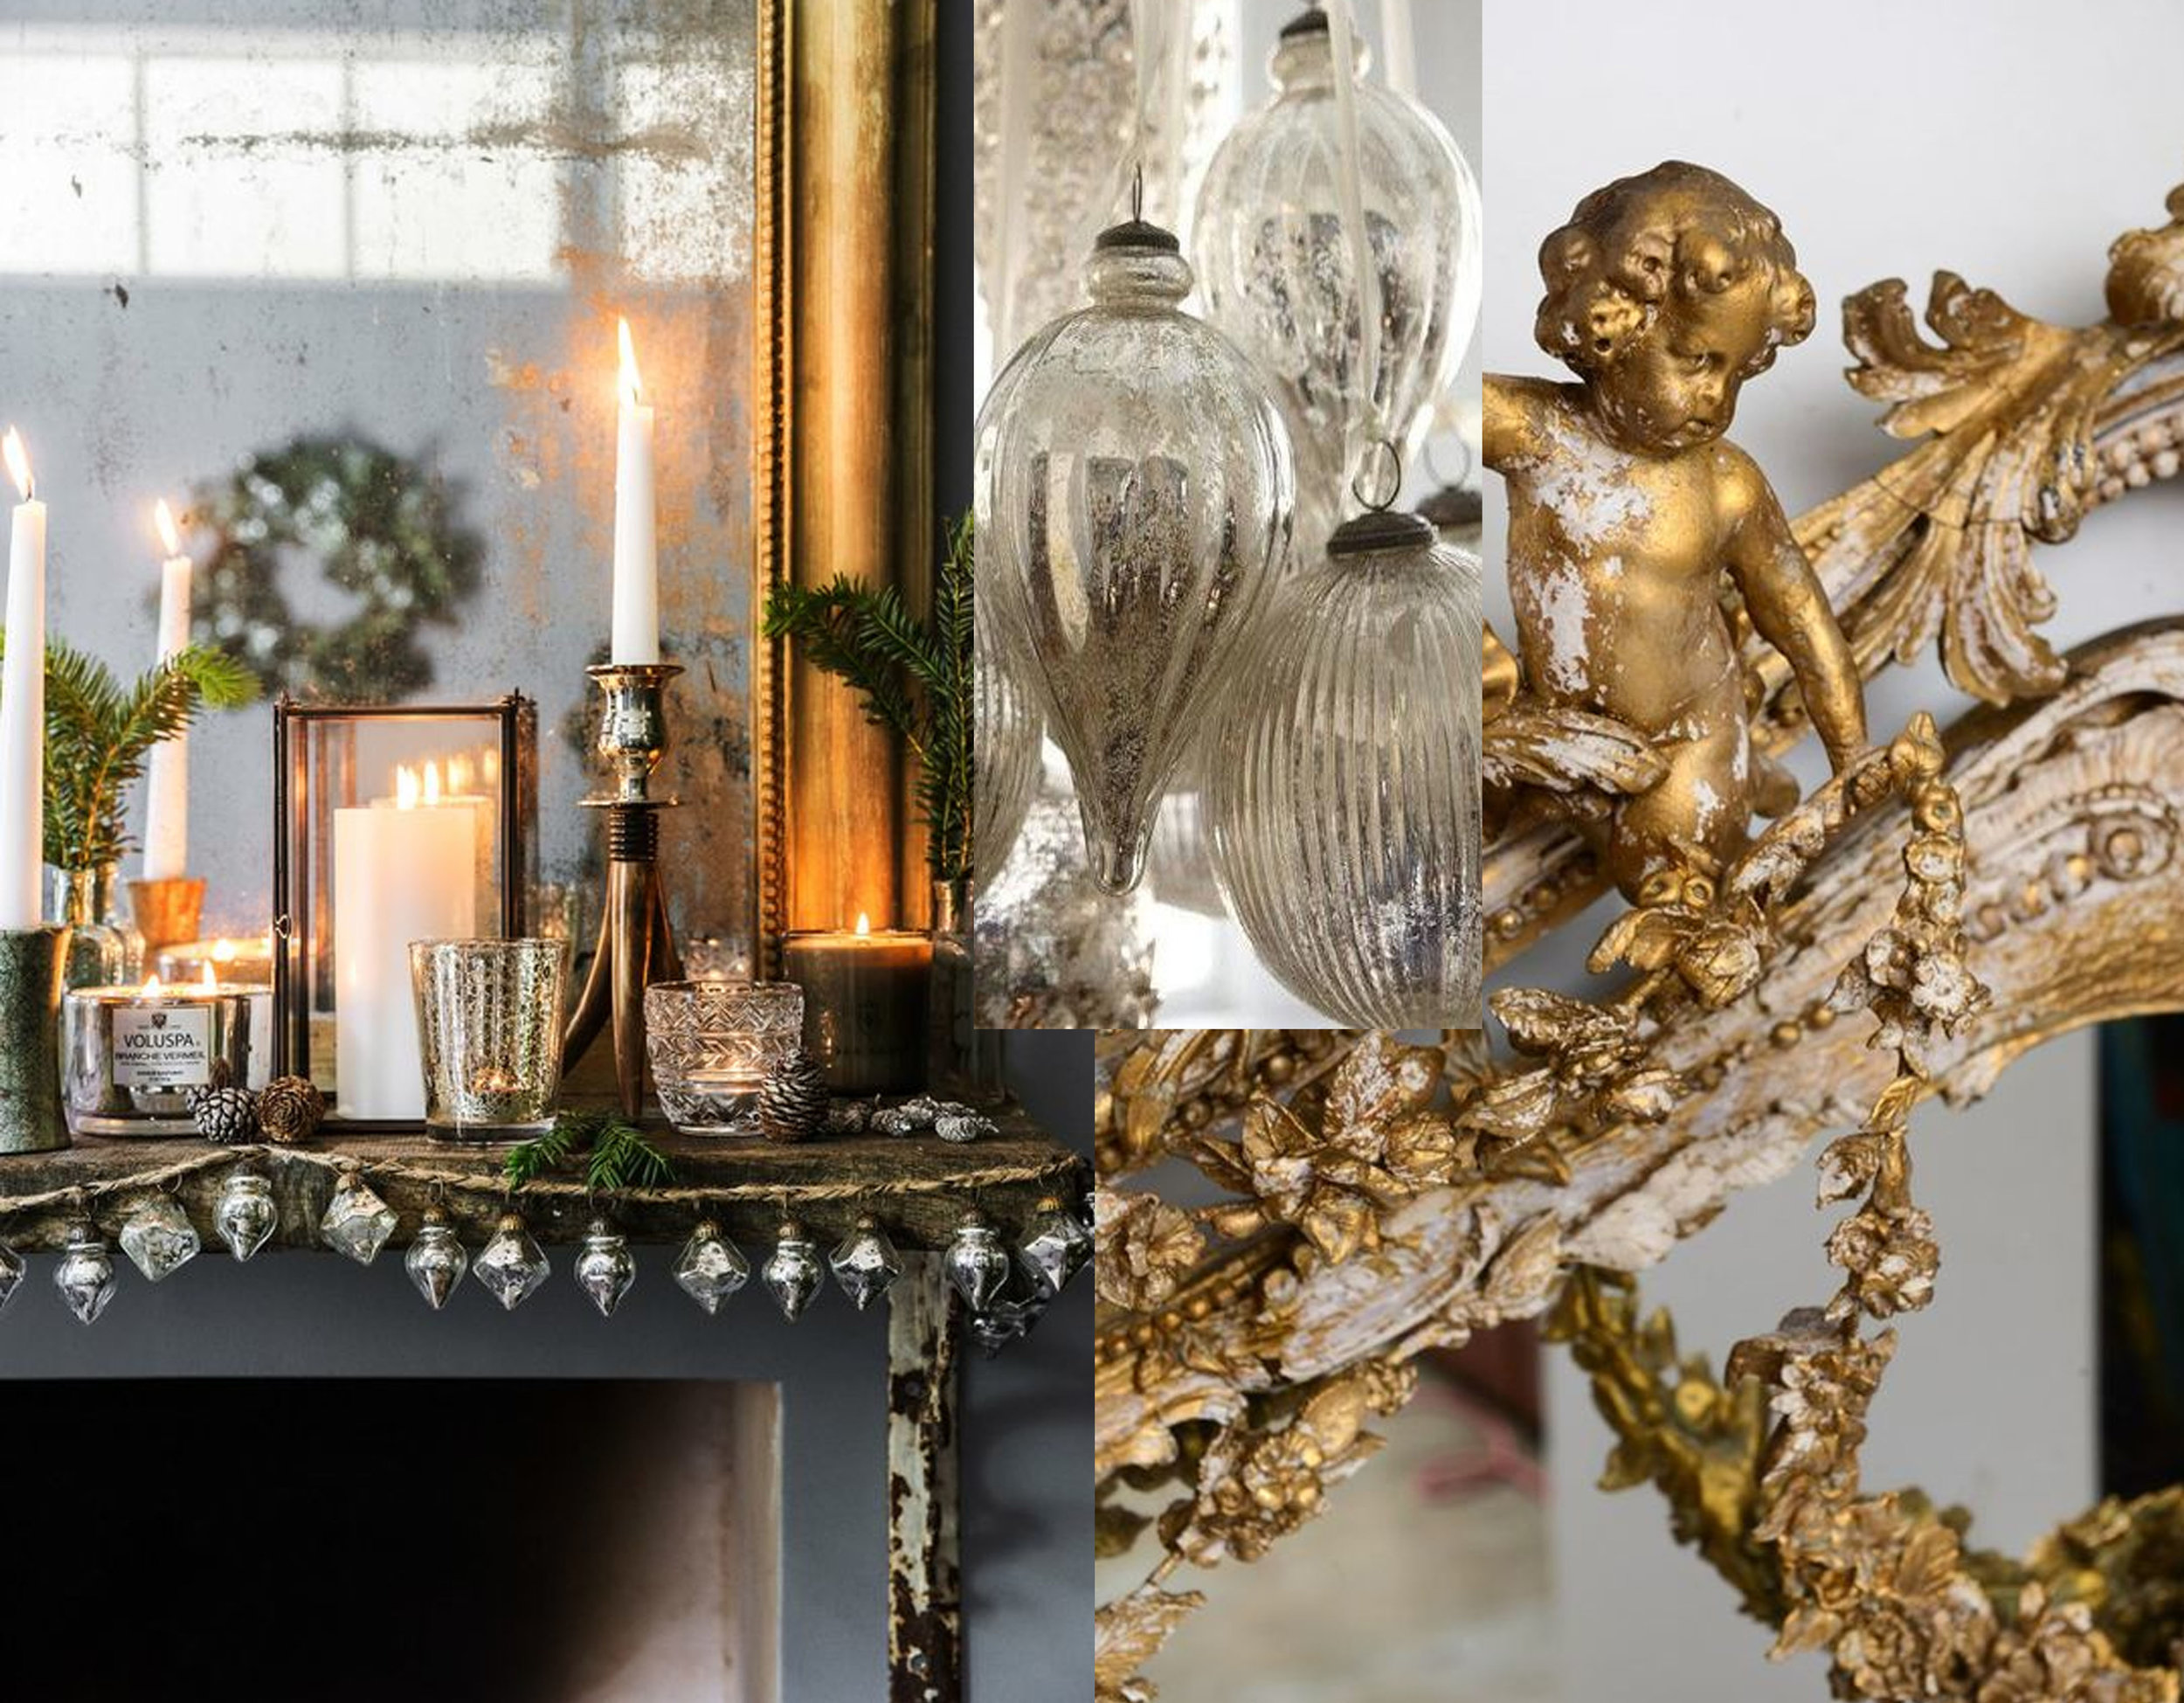 decorated fireplace via  Amara  - mercury glass ornaments  Amazon  - ornate gilt mirror via  Zsa Zsa Bellagio